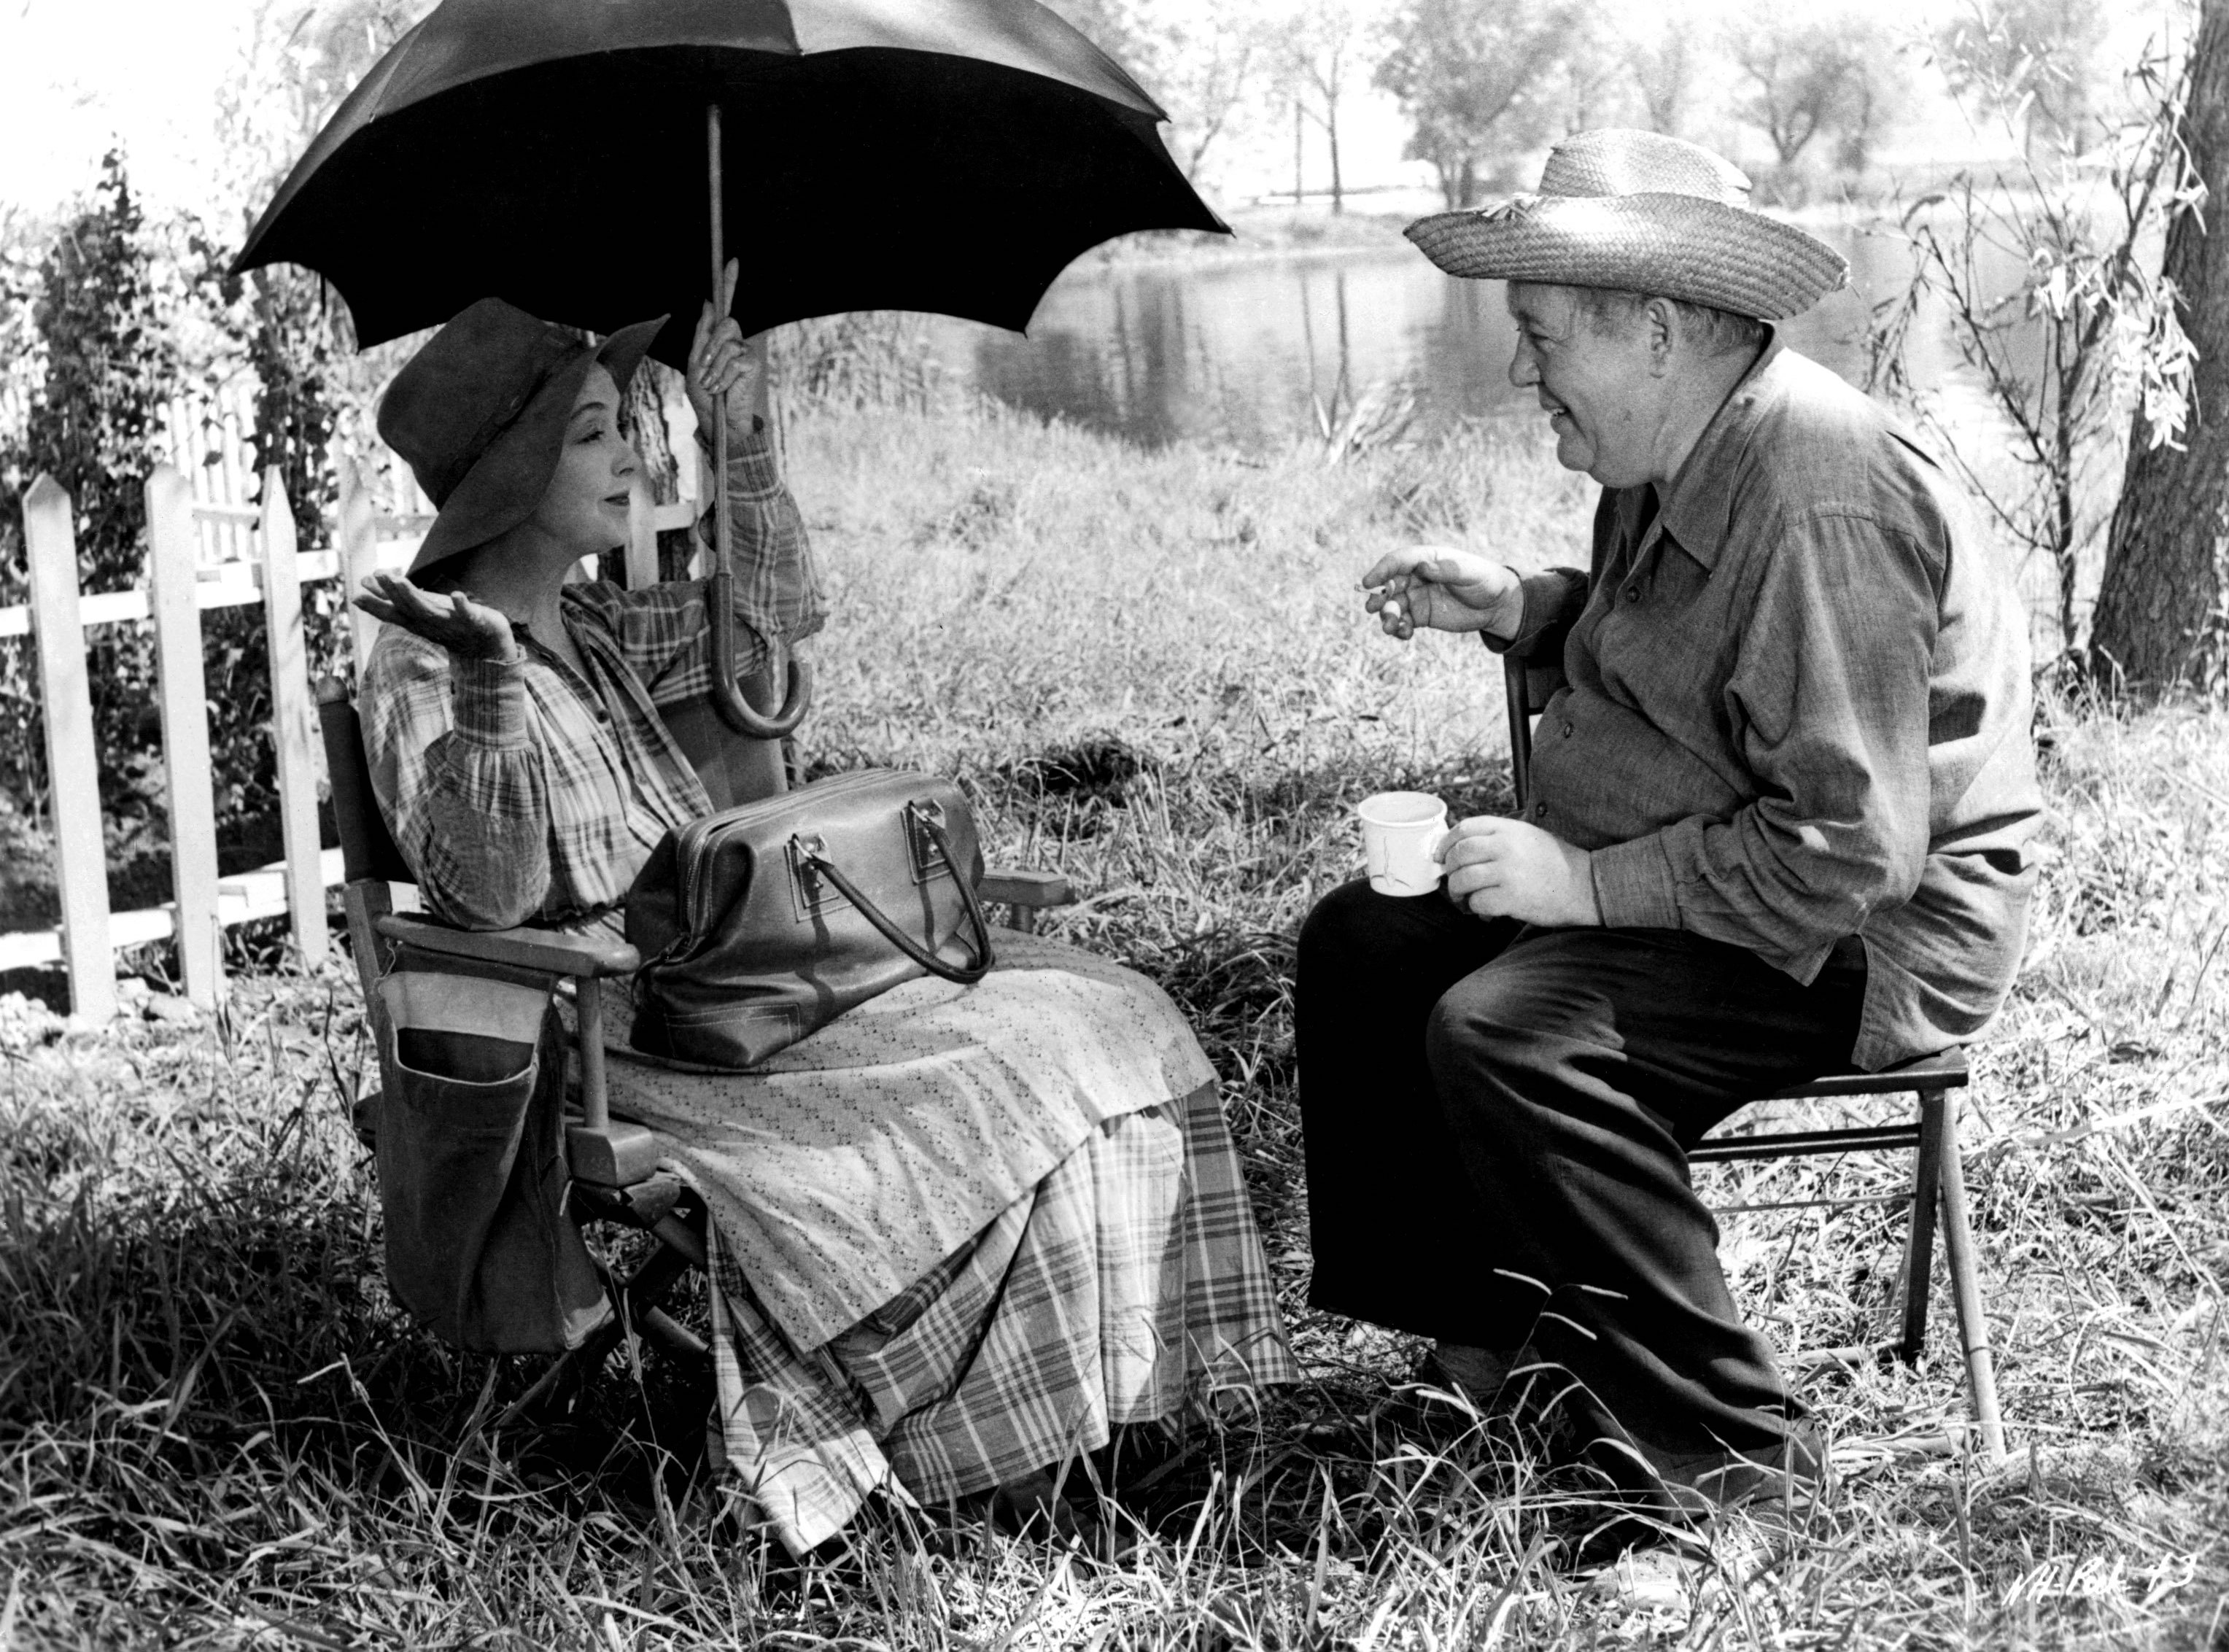 LILLIAN GISH AND CHARLES LAUGHTON ON THE SET OF 'THE NIGHT OF THE HUNTER' - 1955 VARIOUS